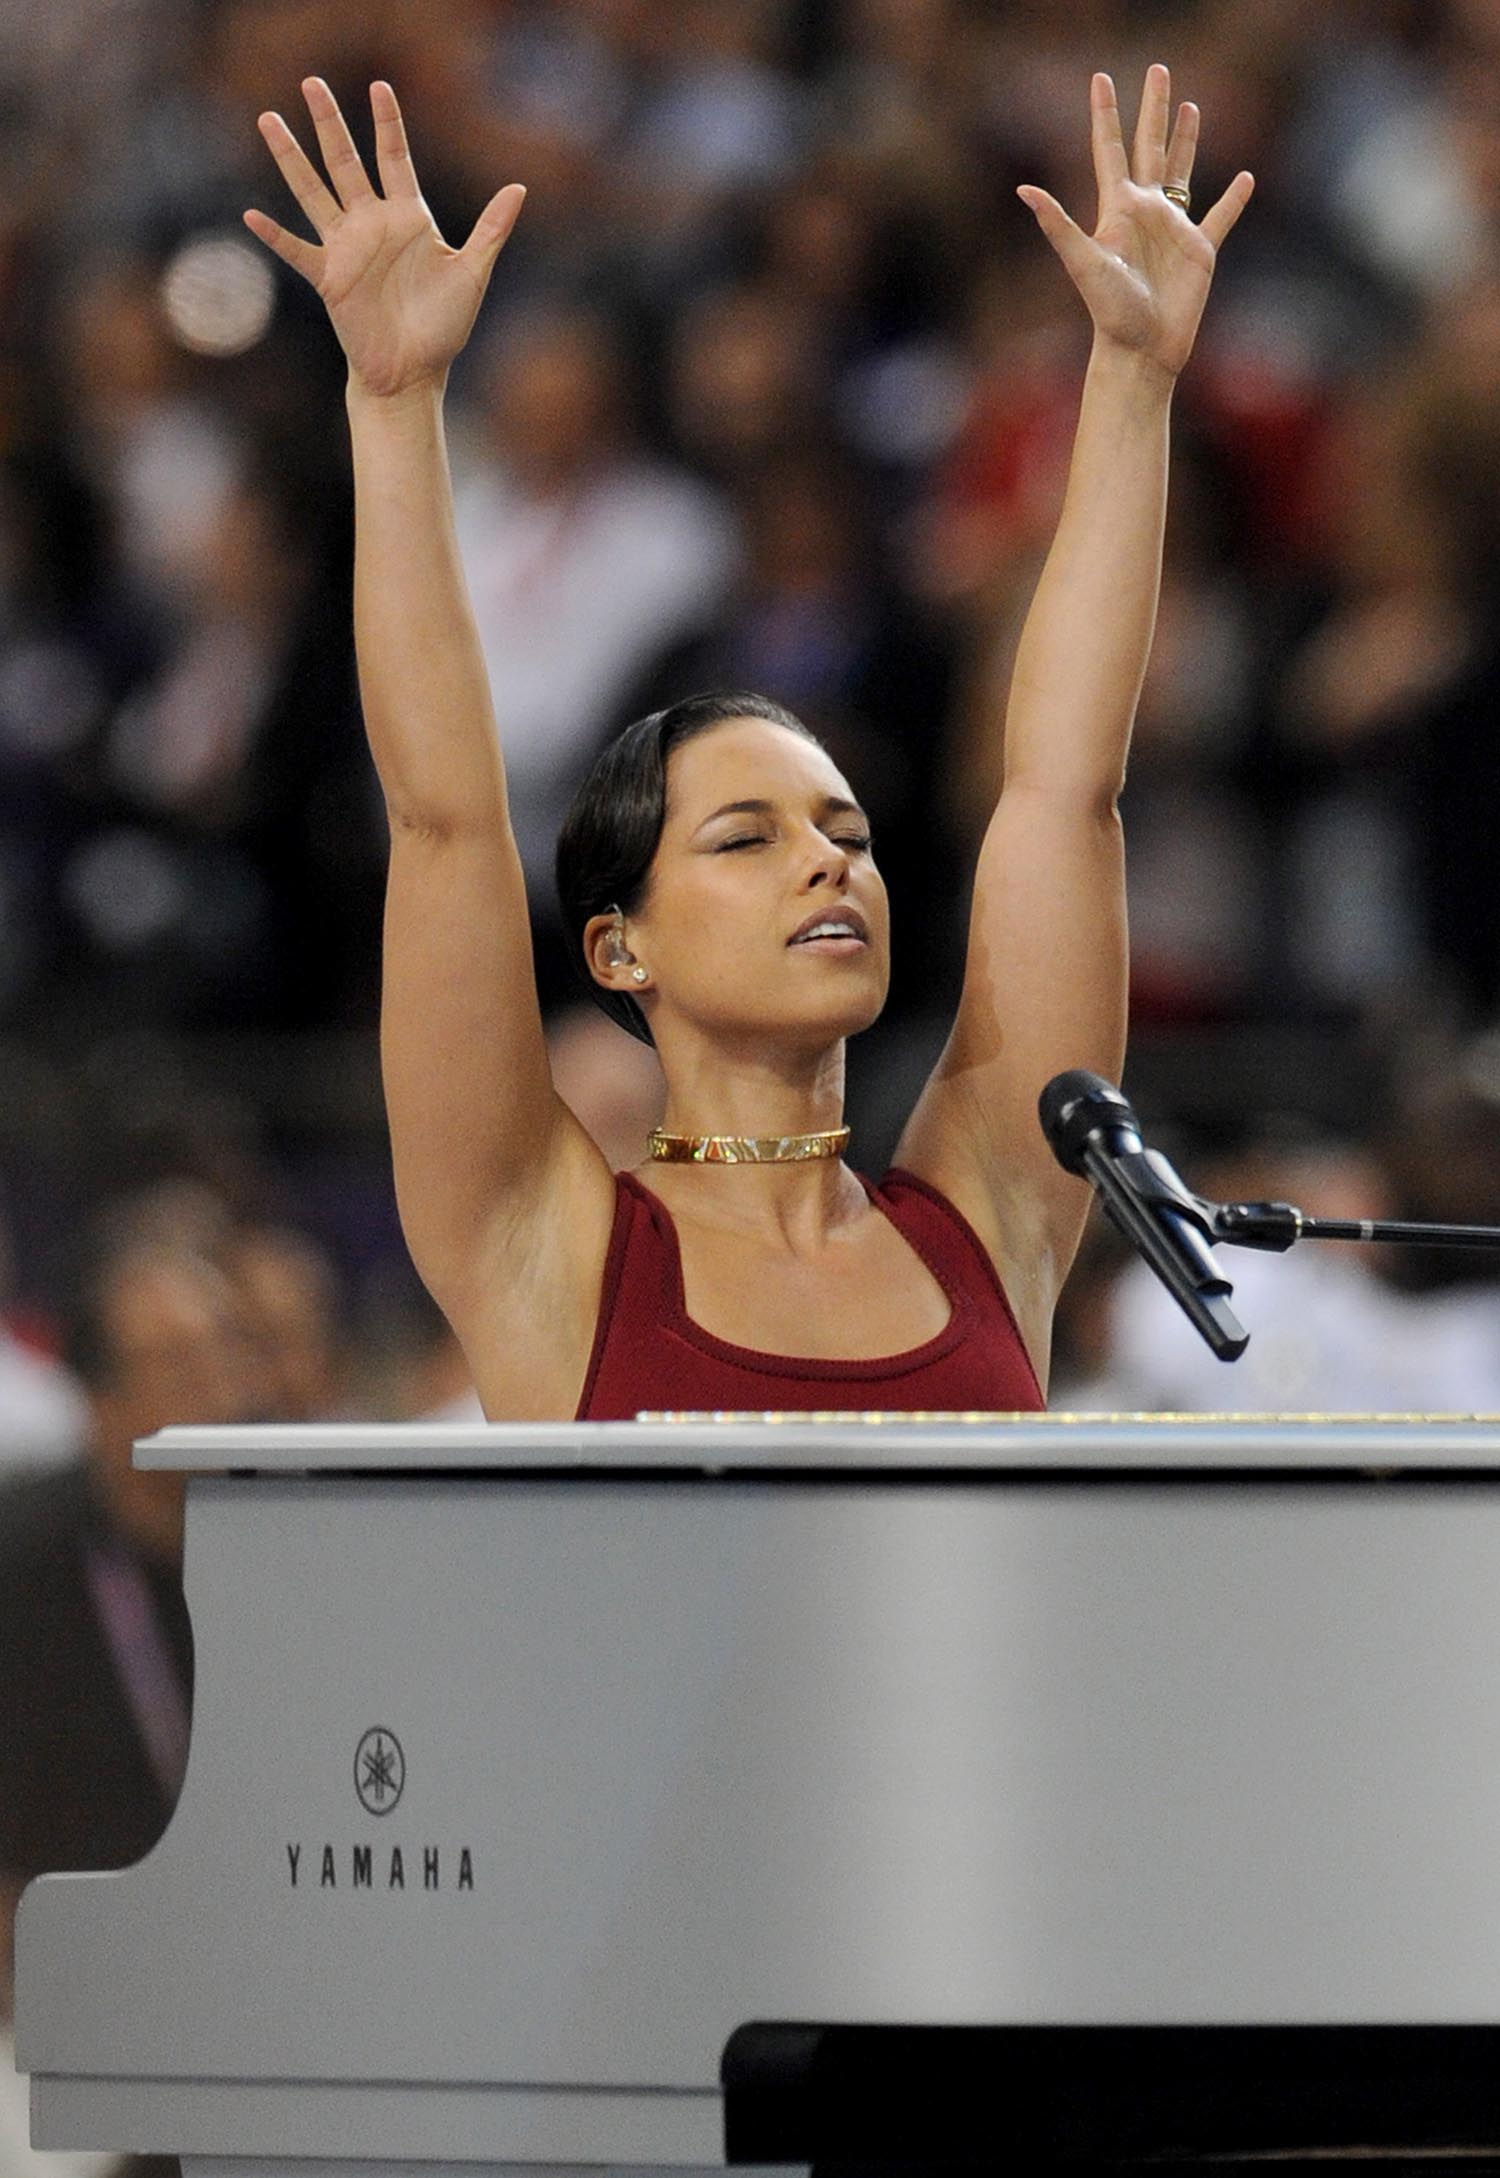 <div class='meta'><div class='origin-logo' data-origin='AP'></div><span class='caption-text' data-credit='Jordan Strauss/Invision/AP'>2013: Recording artist Alicia Keys performs the National Anthem at Super Bowl XLVII on Sunday, Feb. 3, 2013 in New Orleans.</span></div>